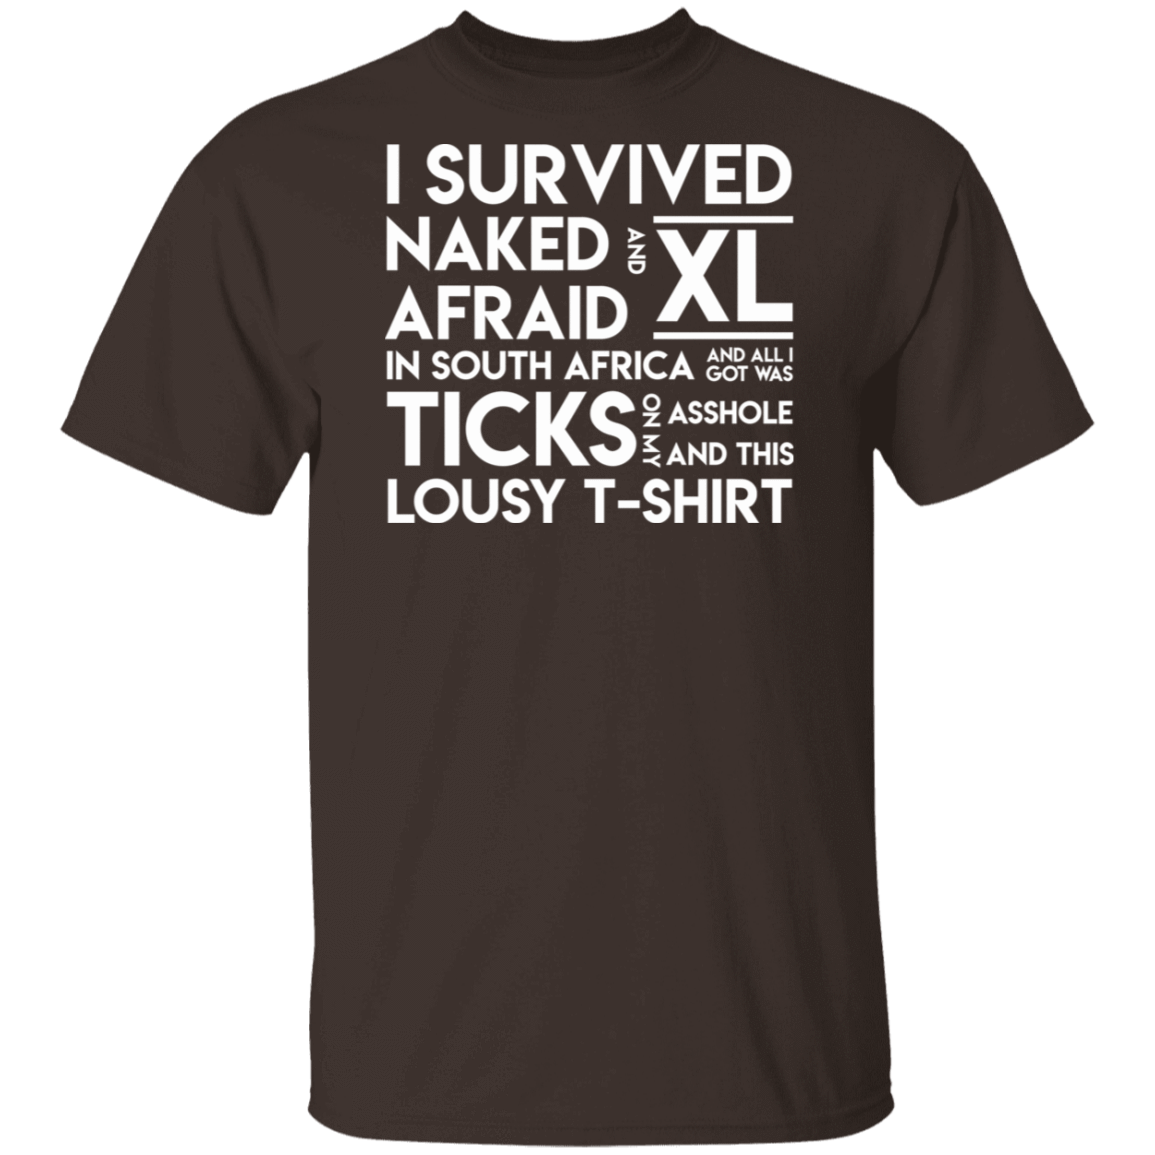 I Survived Naked Afraid and XL In South Africa T-Shirts, Hoodies, Tank 1049-9956-80563062-48152 - Tee Ript